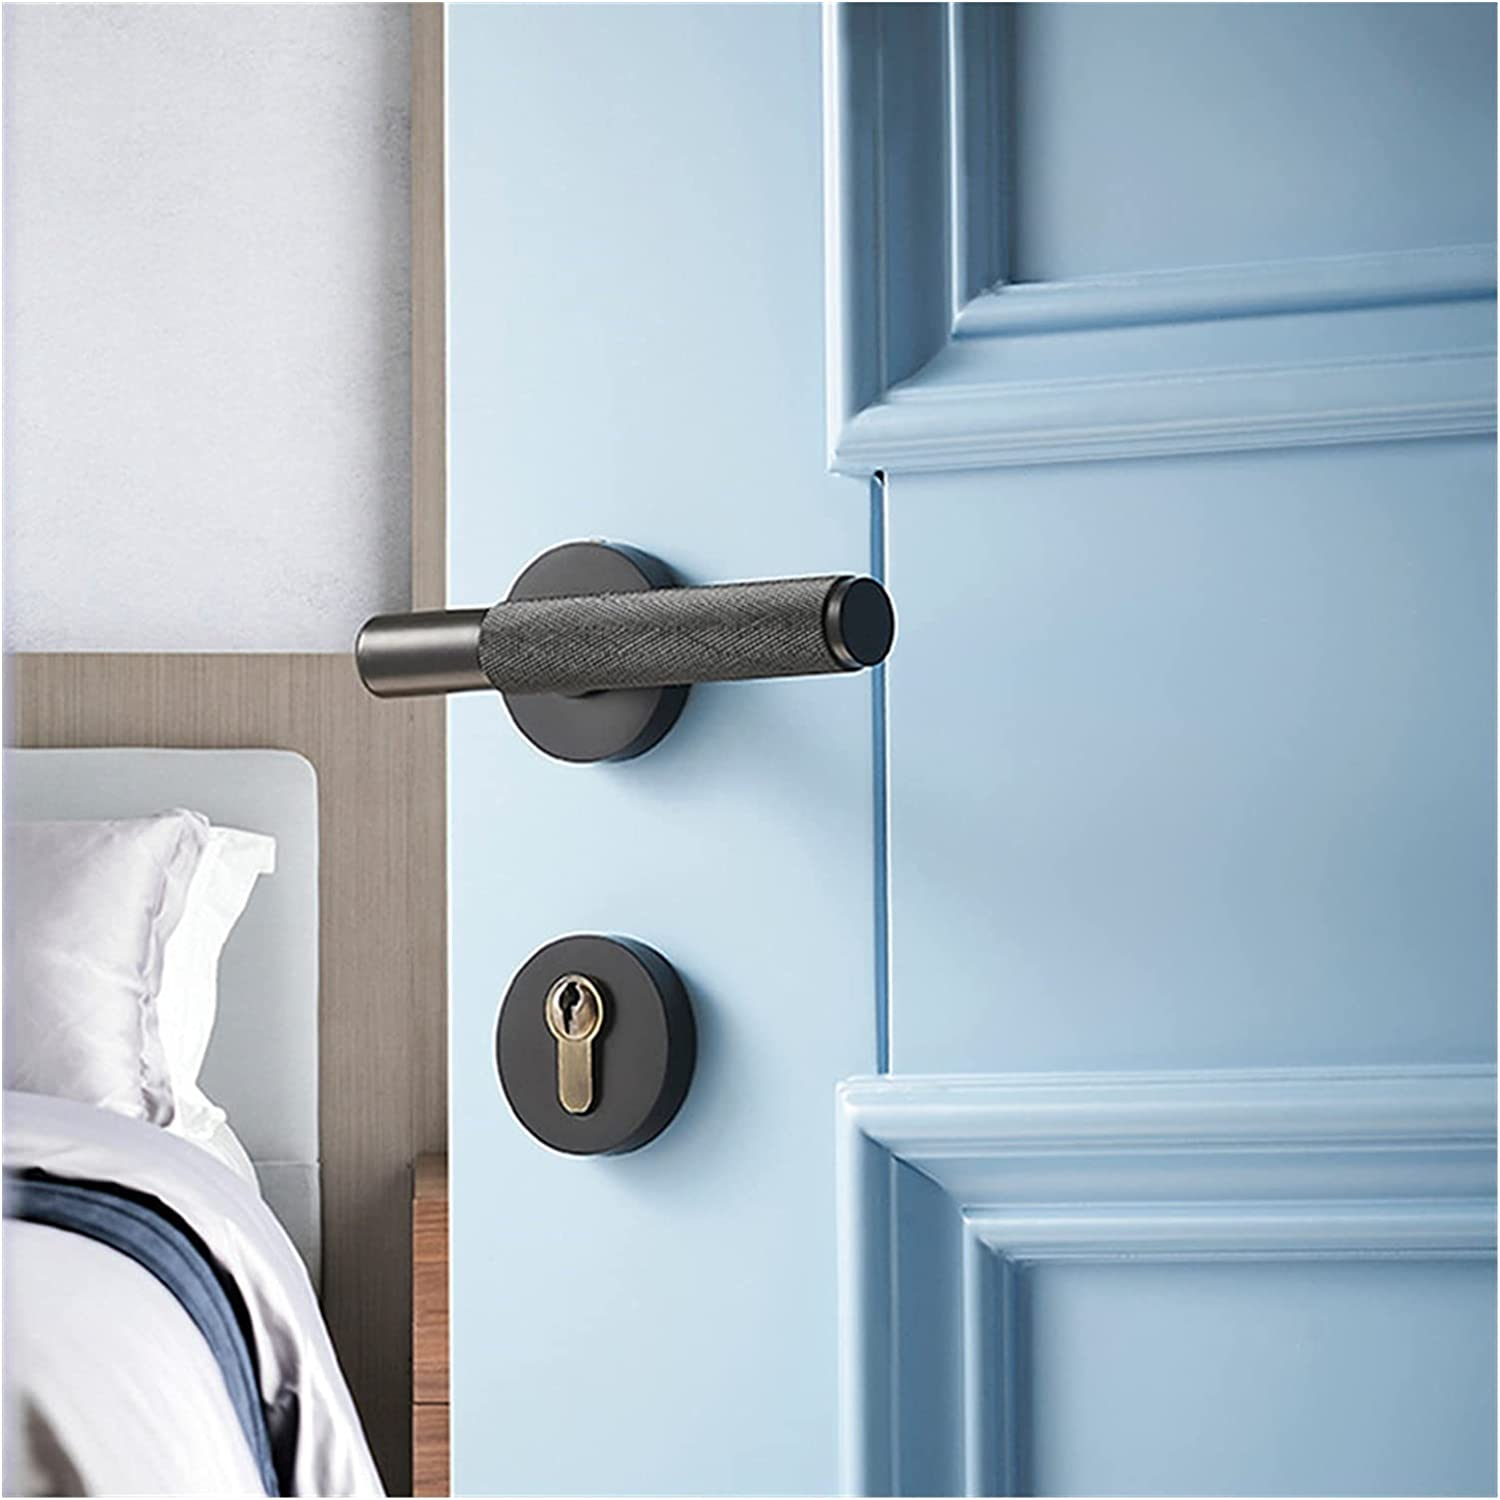 CHENGSYSTE Push Pull New products world's highest quality popular Handles Gifts Copper Door Bed Handle Lock SIL-ent